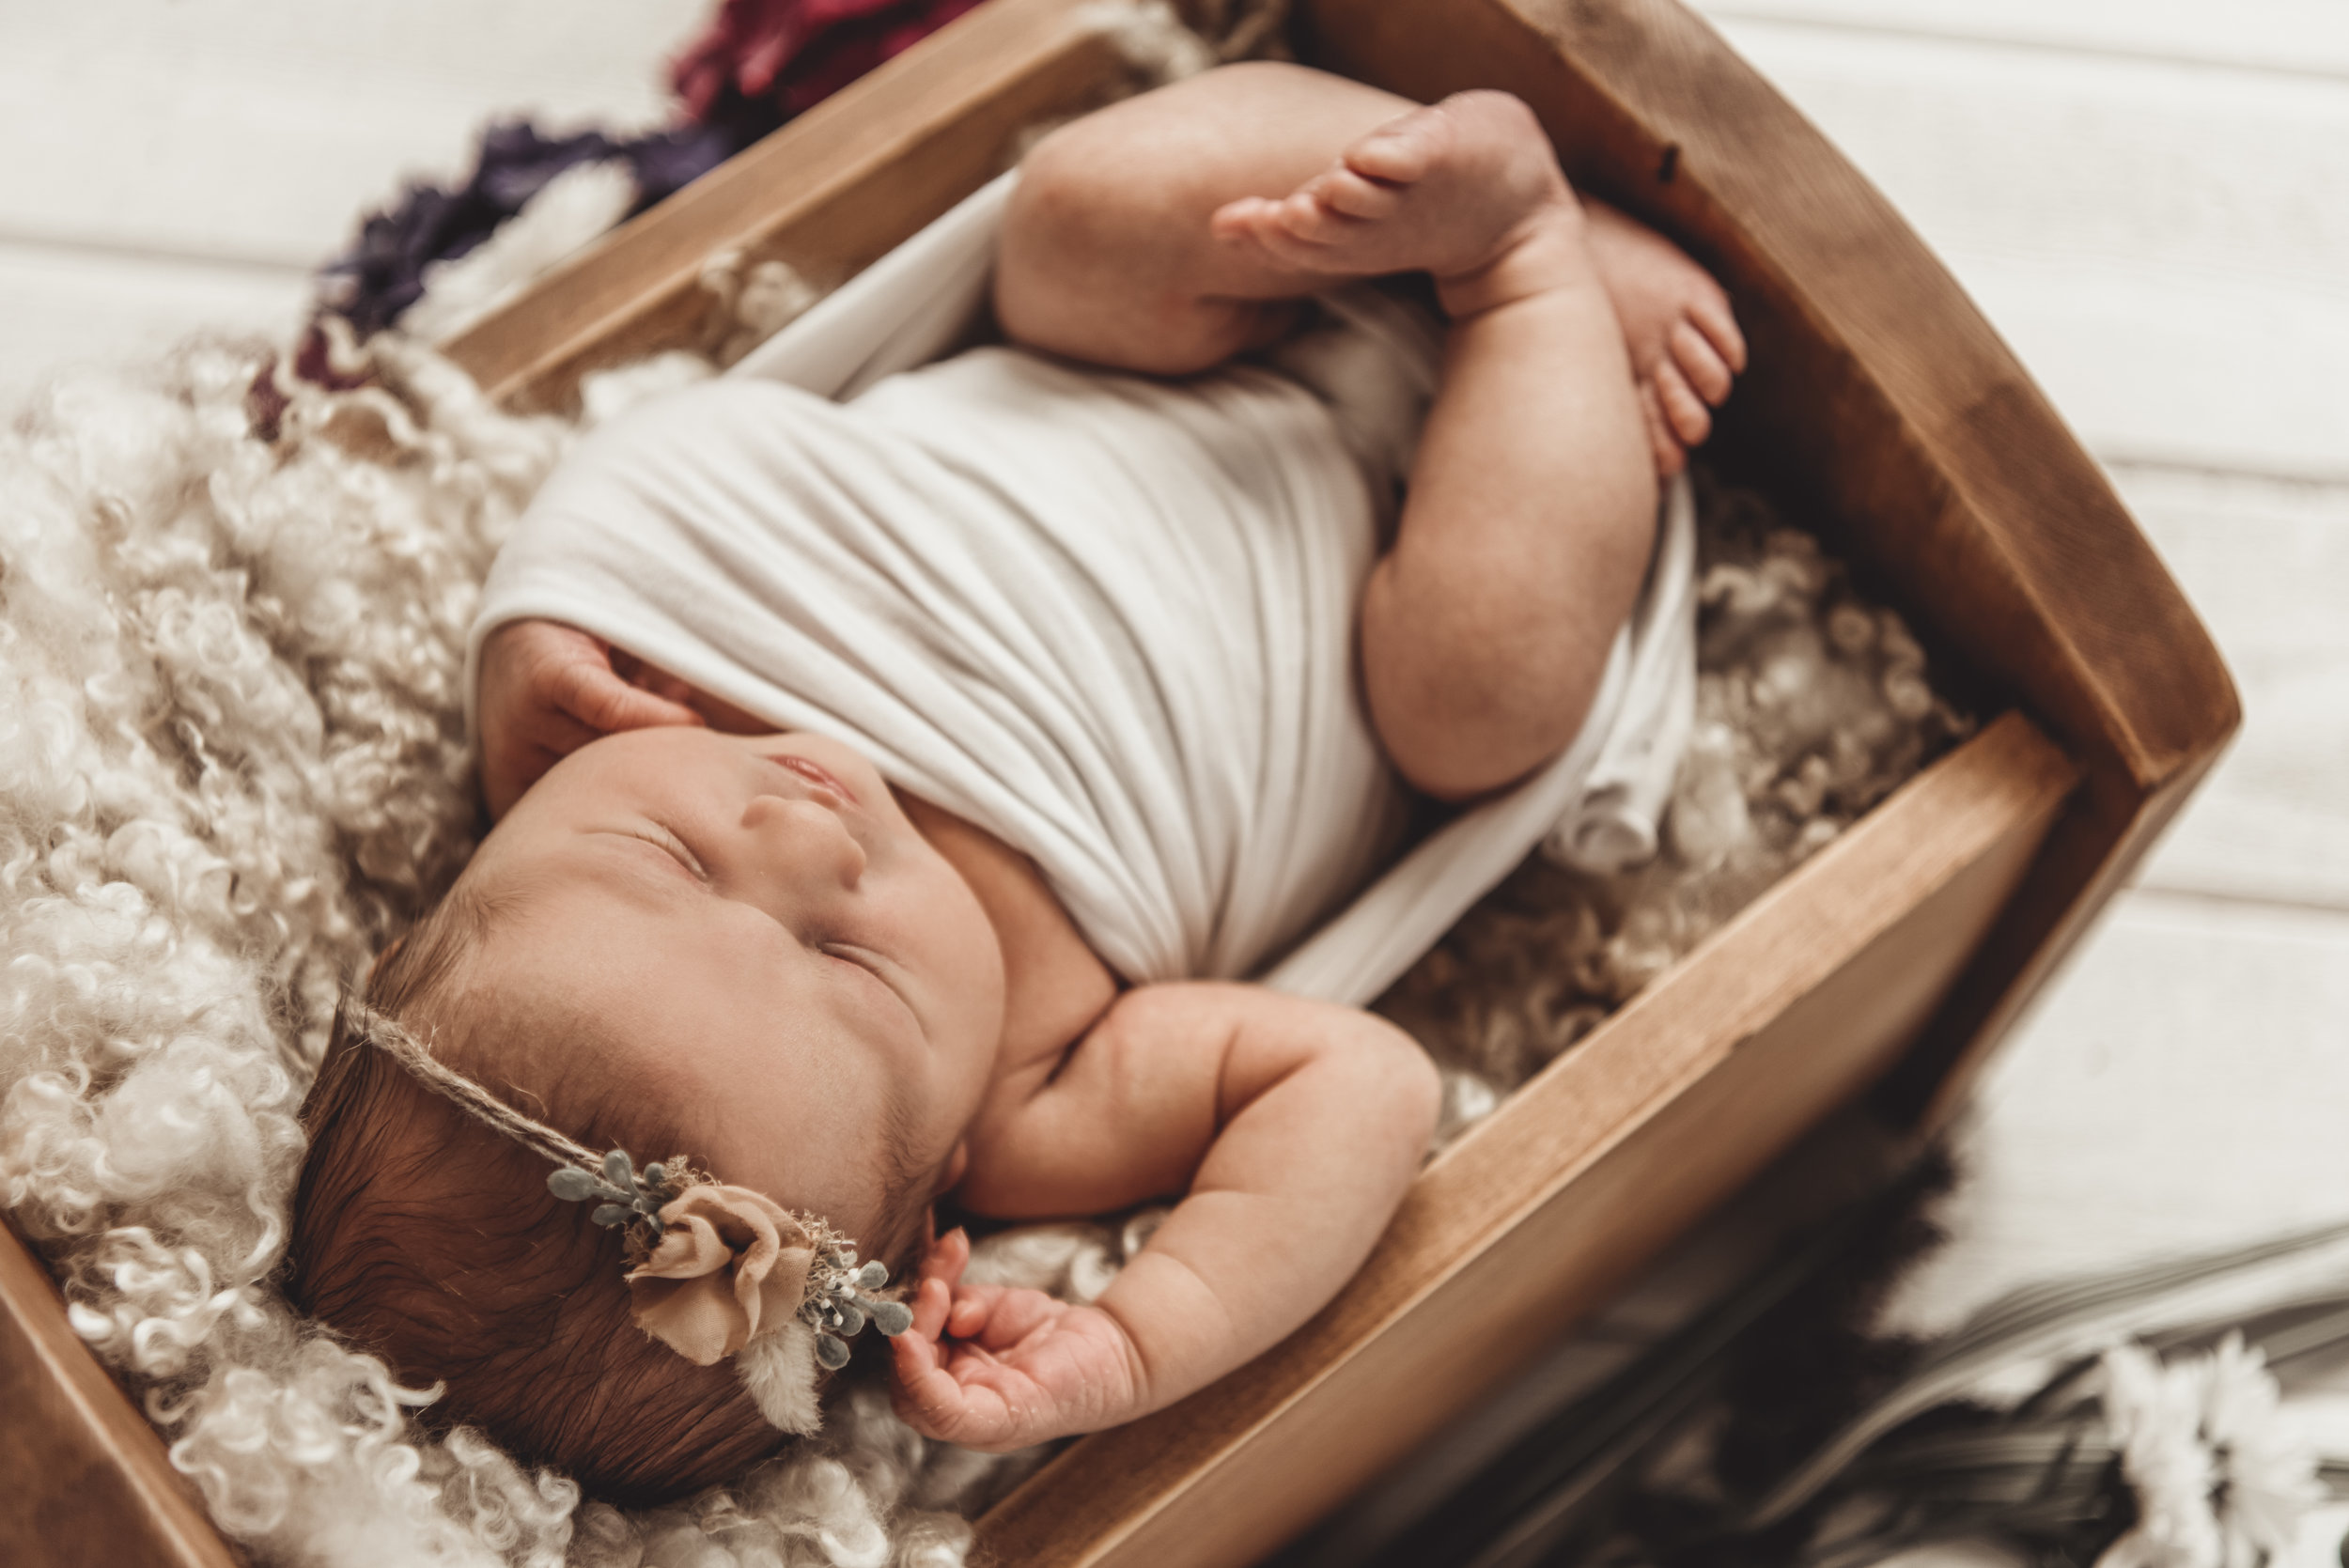 Newborn Ruby Rose - Kathleen Woods - Laura Olson Photography - Sunshine Coast BC Photographer39.jpg